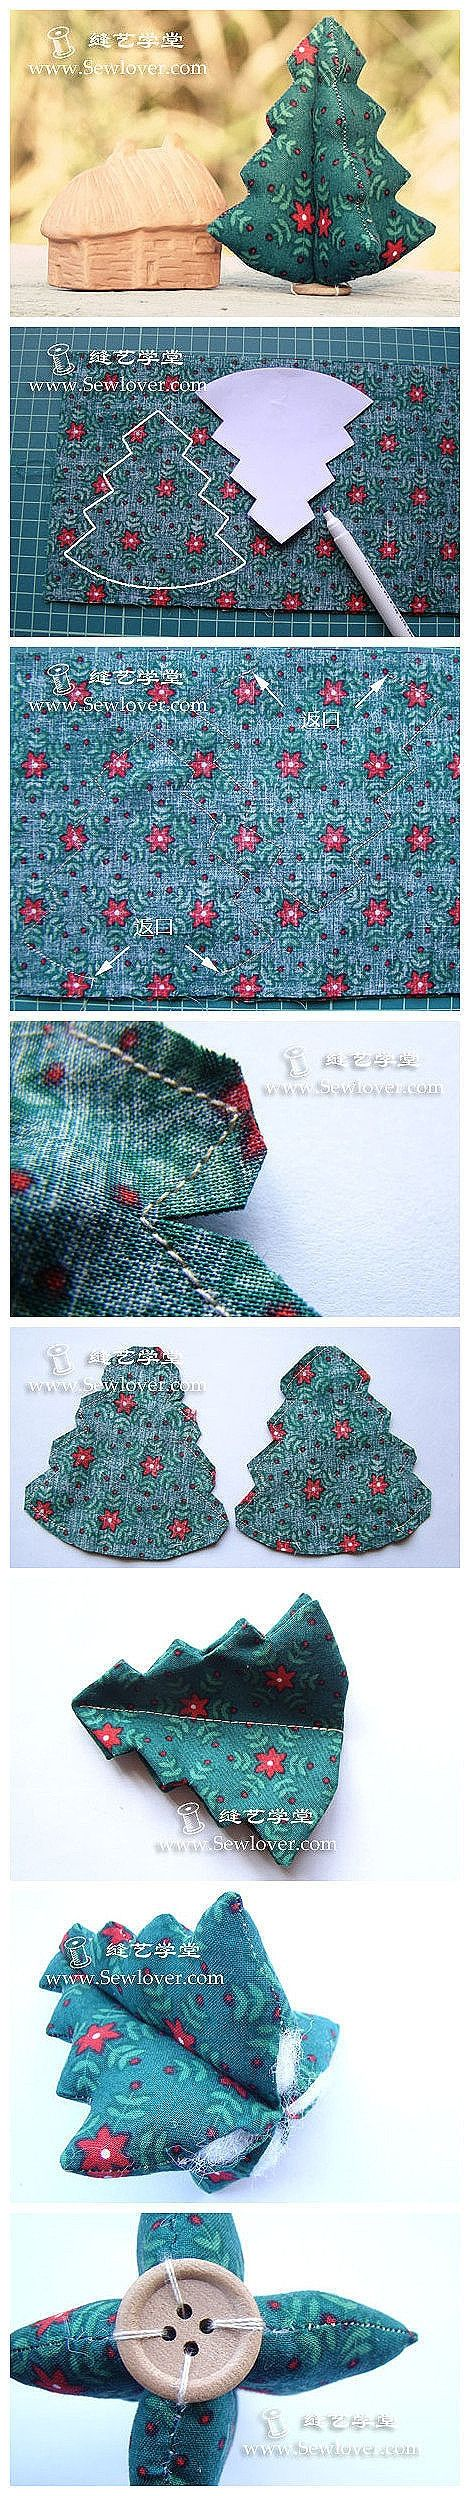 How to sew cute fabric Christmas trees step by step DIY tutorial instructions, How to, how to do, diy instructions, crafts, do it yourself, ...